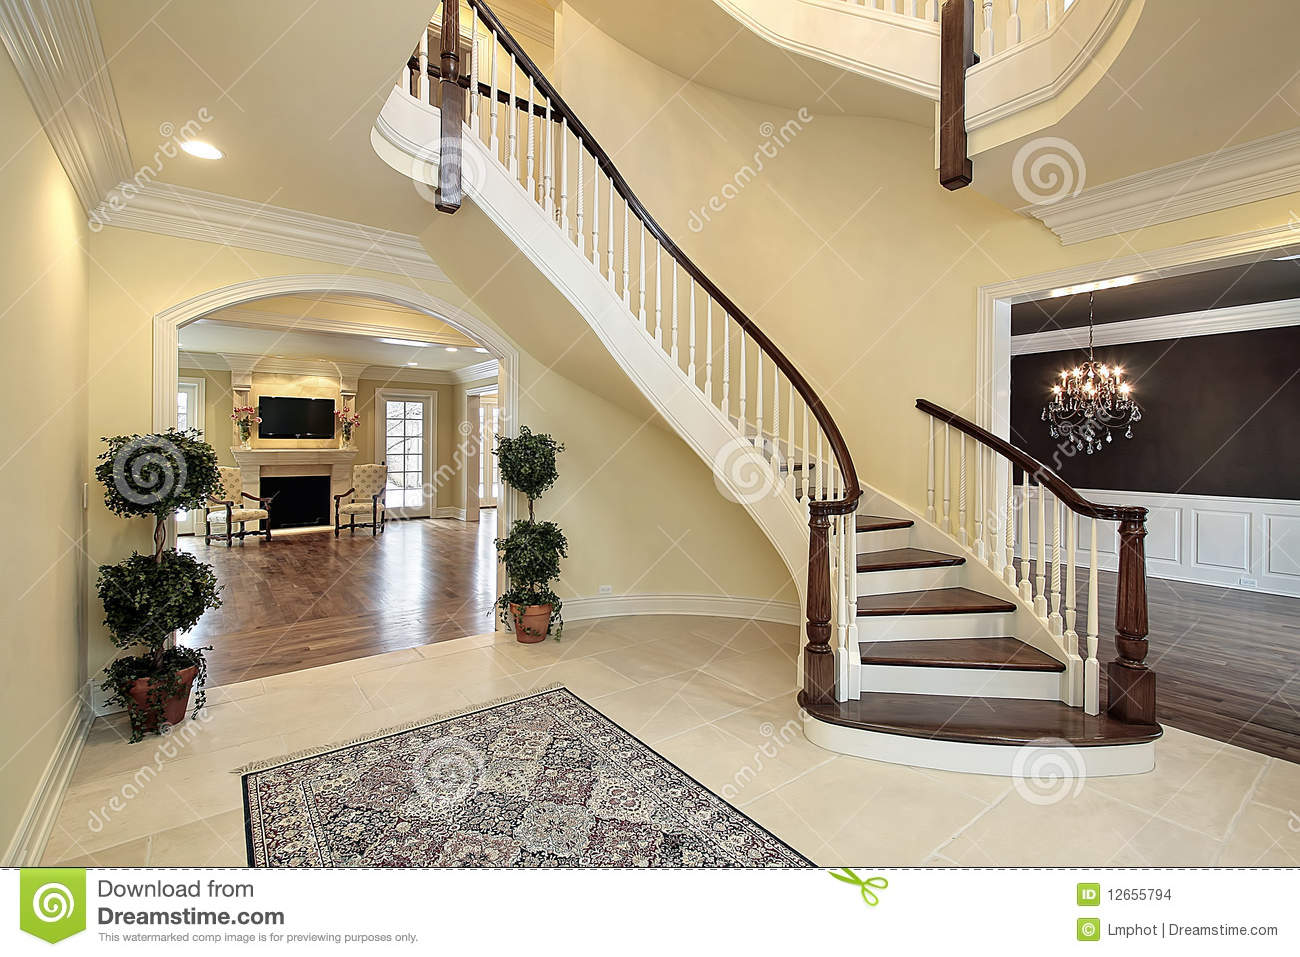 Staircase railings design pictures remodel decor and ideas page ...